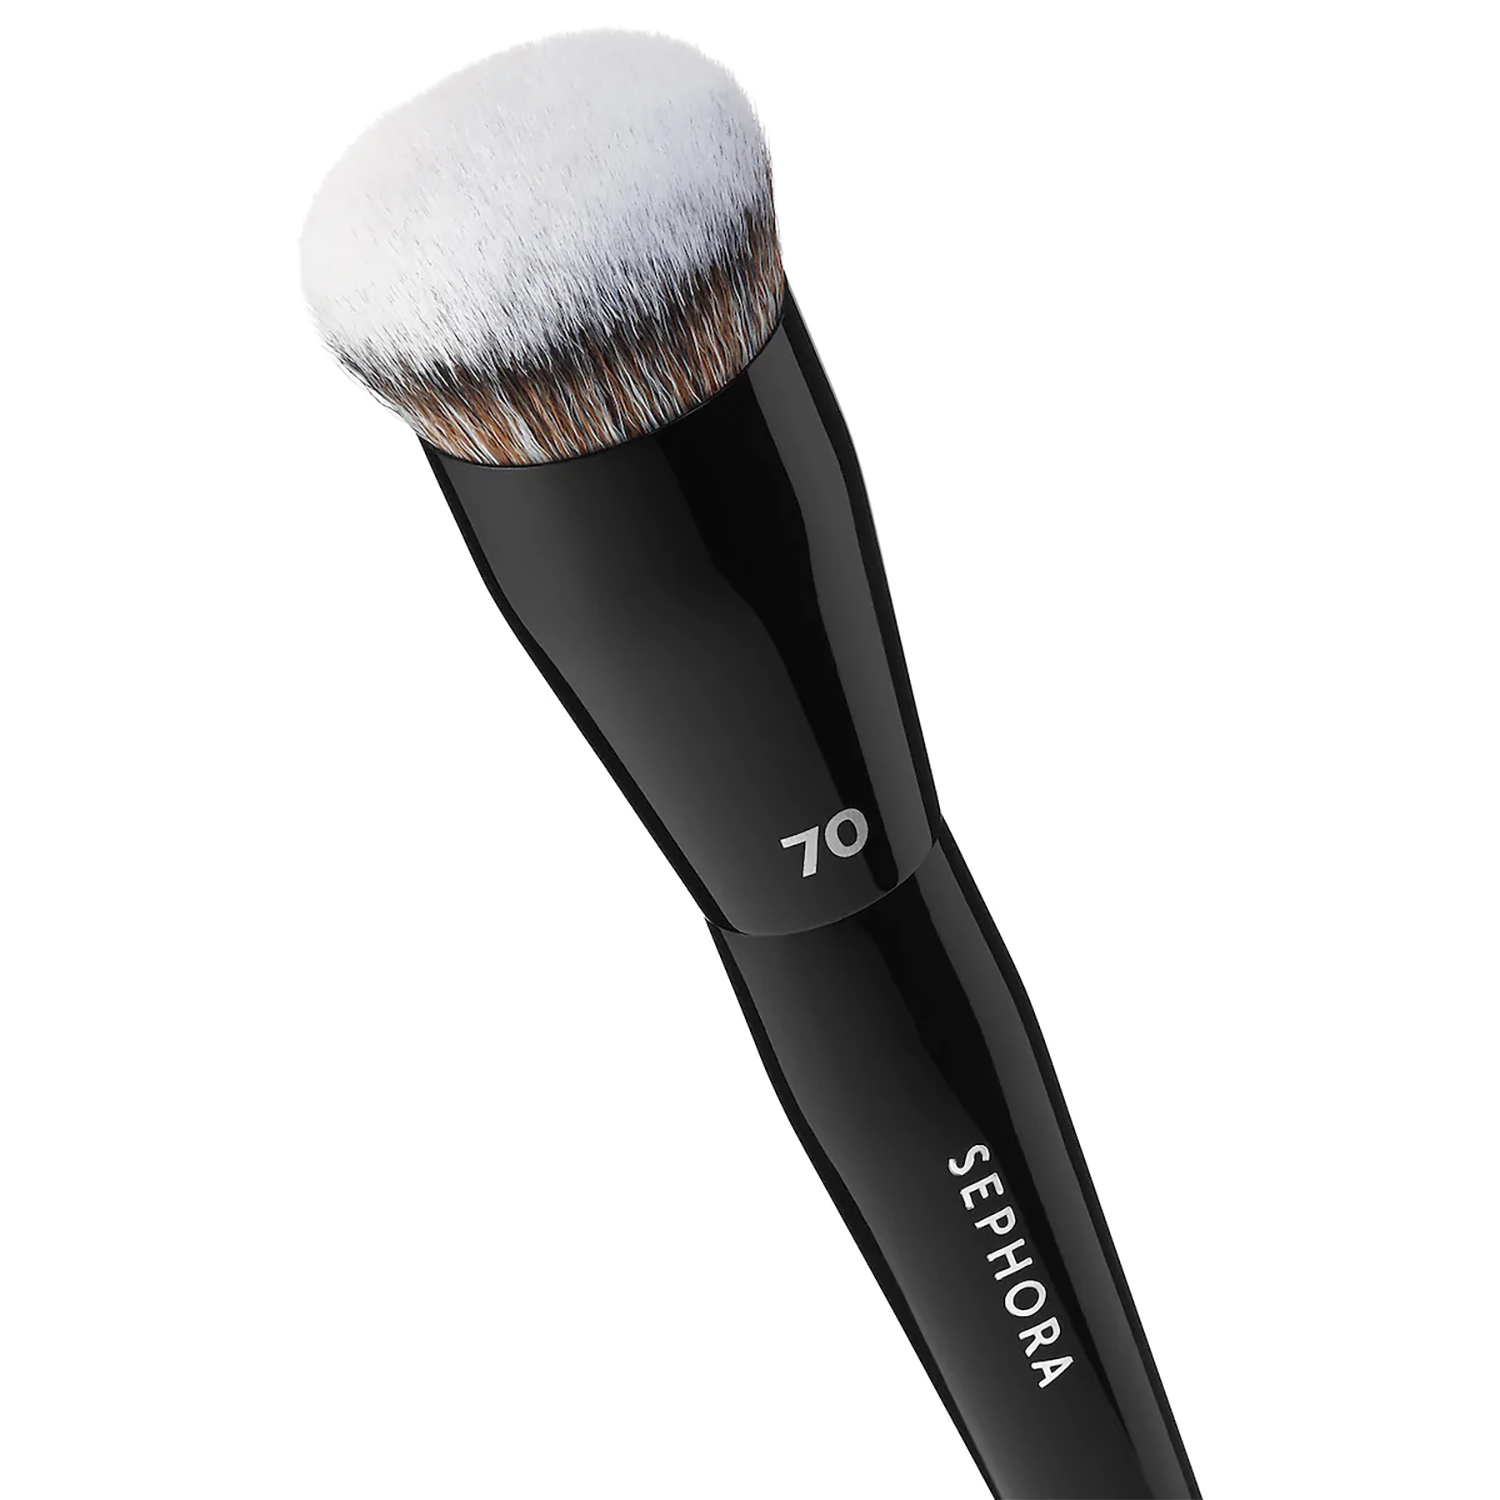 Sephora foundation brush